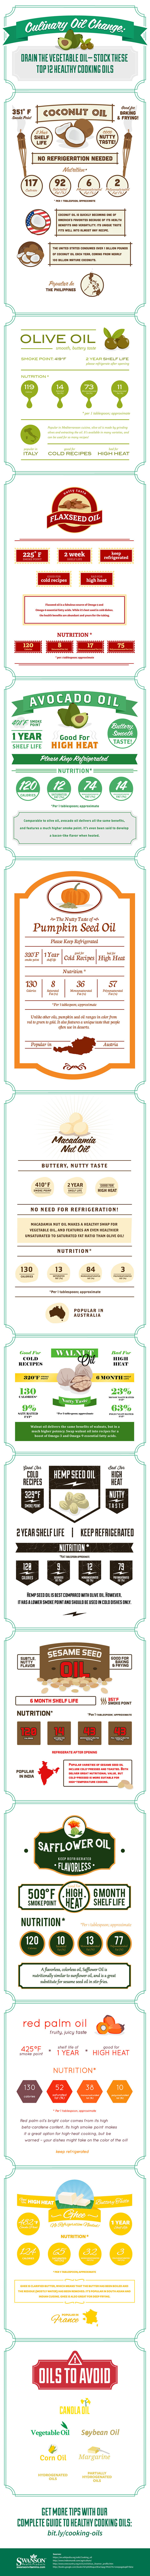 12 Oils For Cooking Infographic